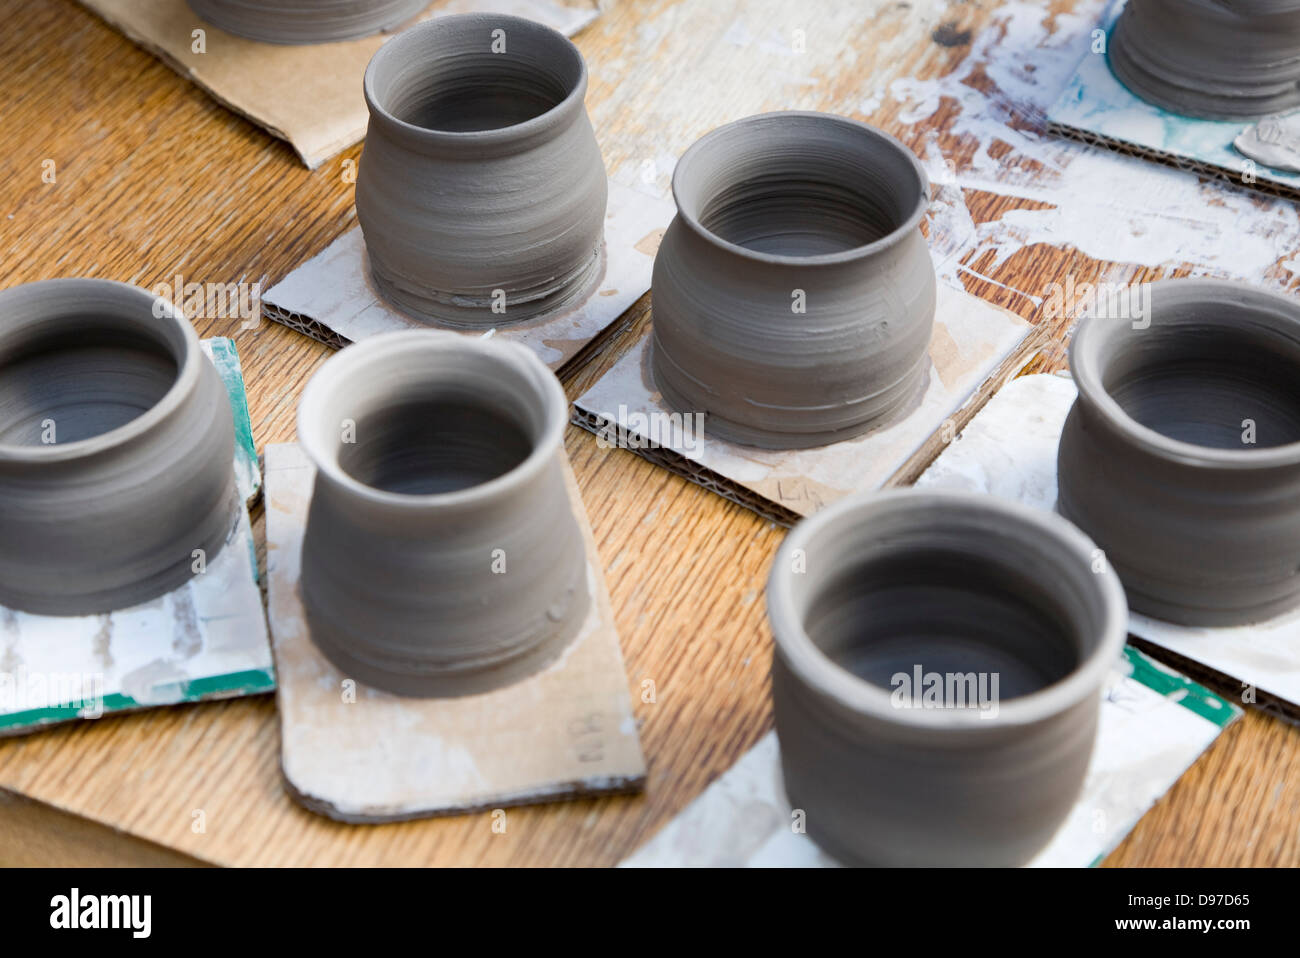 Pottery making display at country craft event, Shottisham, Suffolk, England - Stock Image